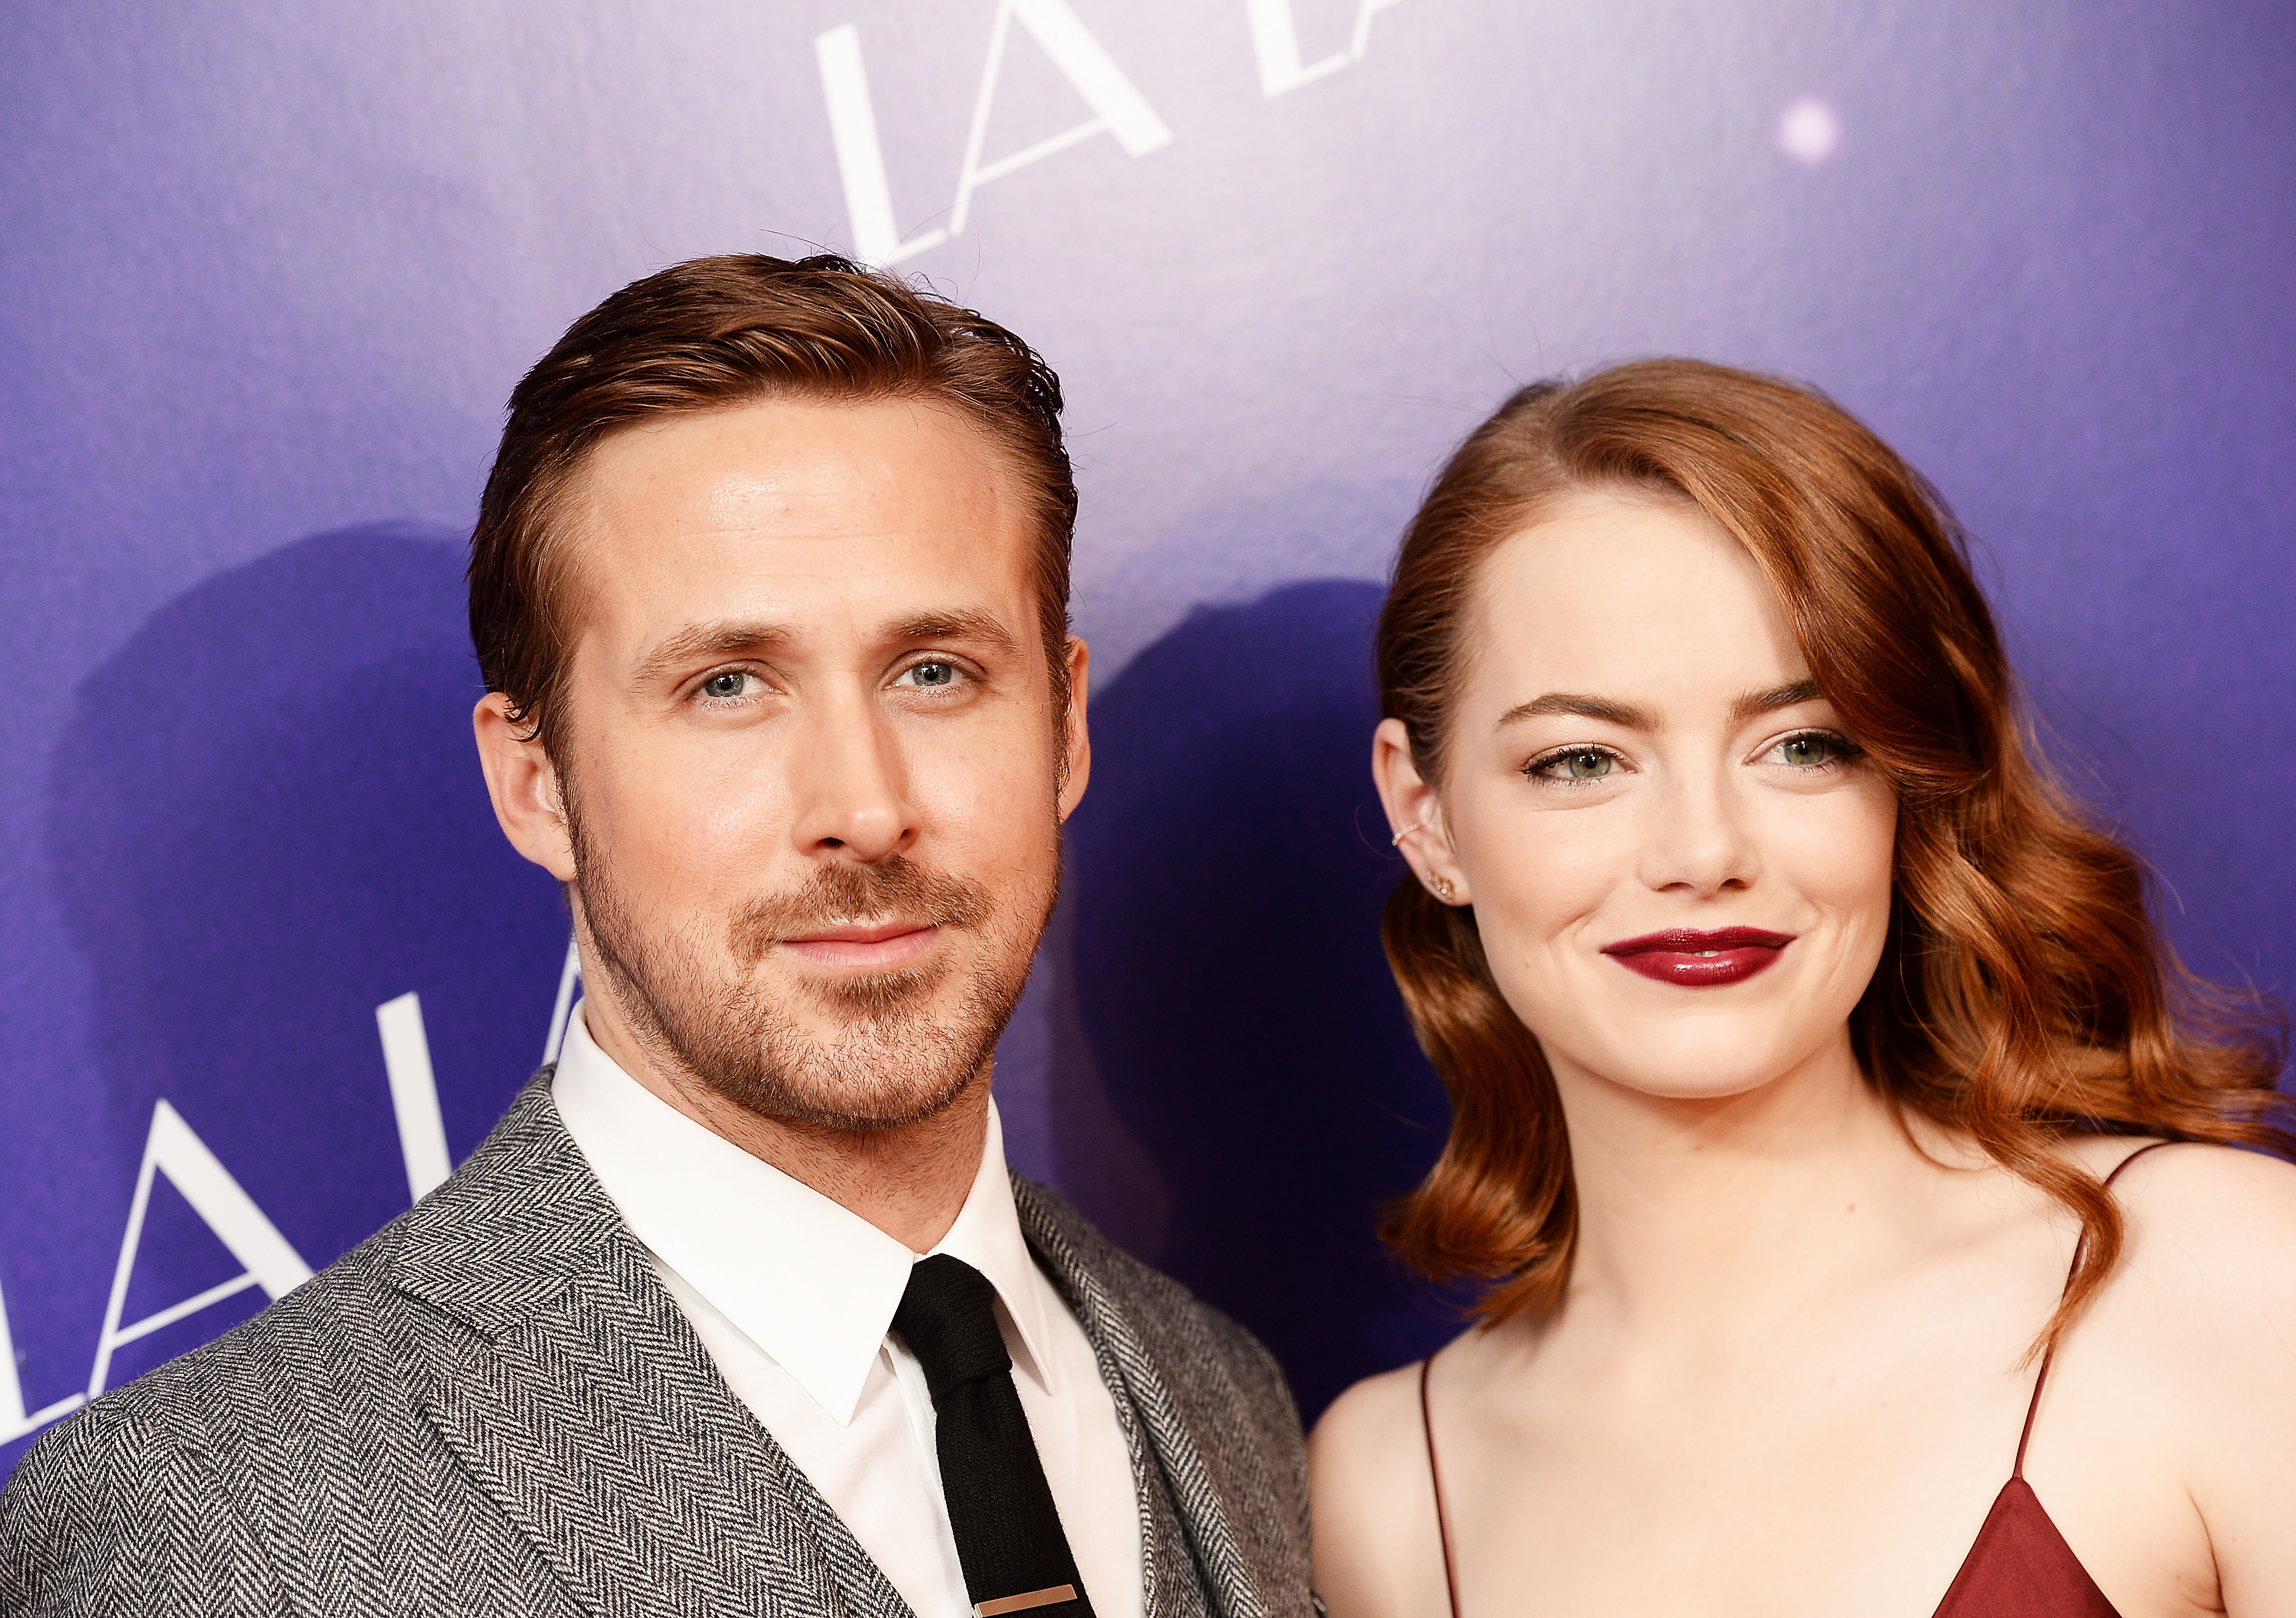 'La La Land' Gala Screening - VIP Arrivals